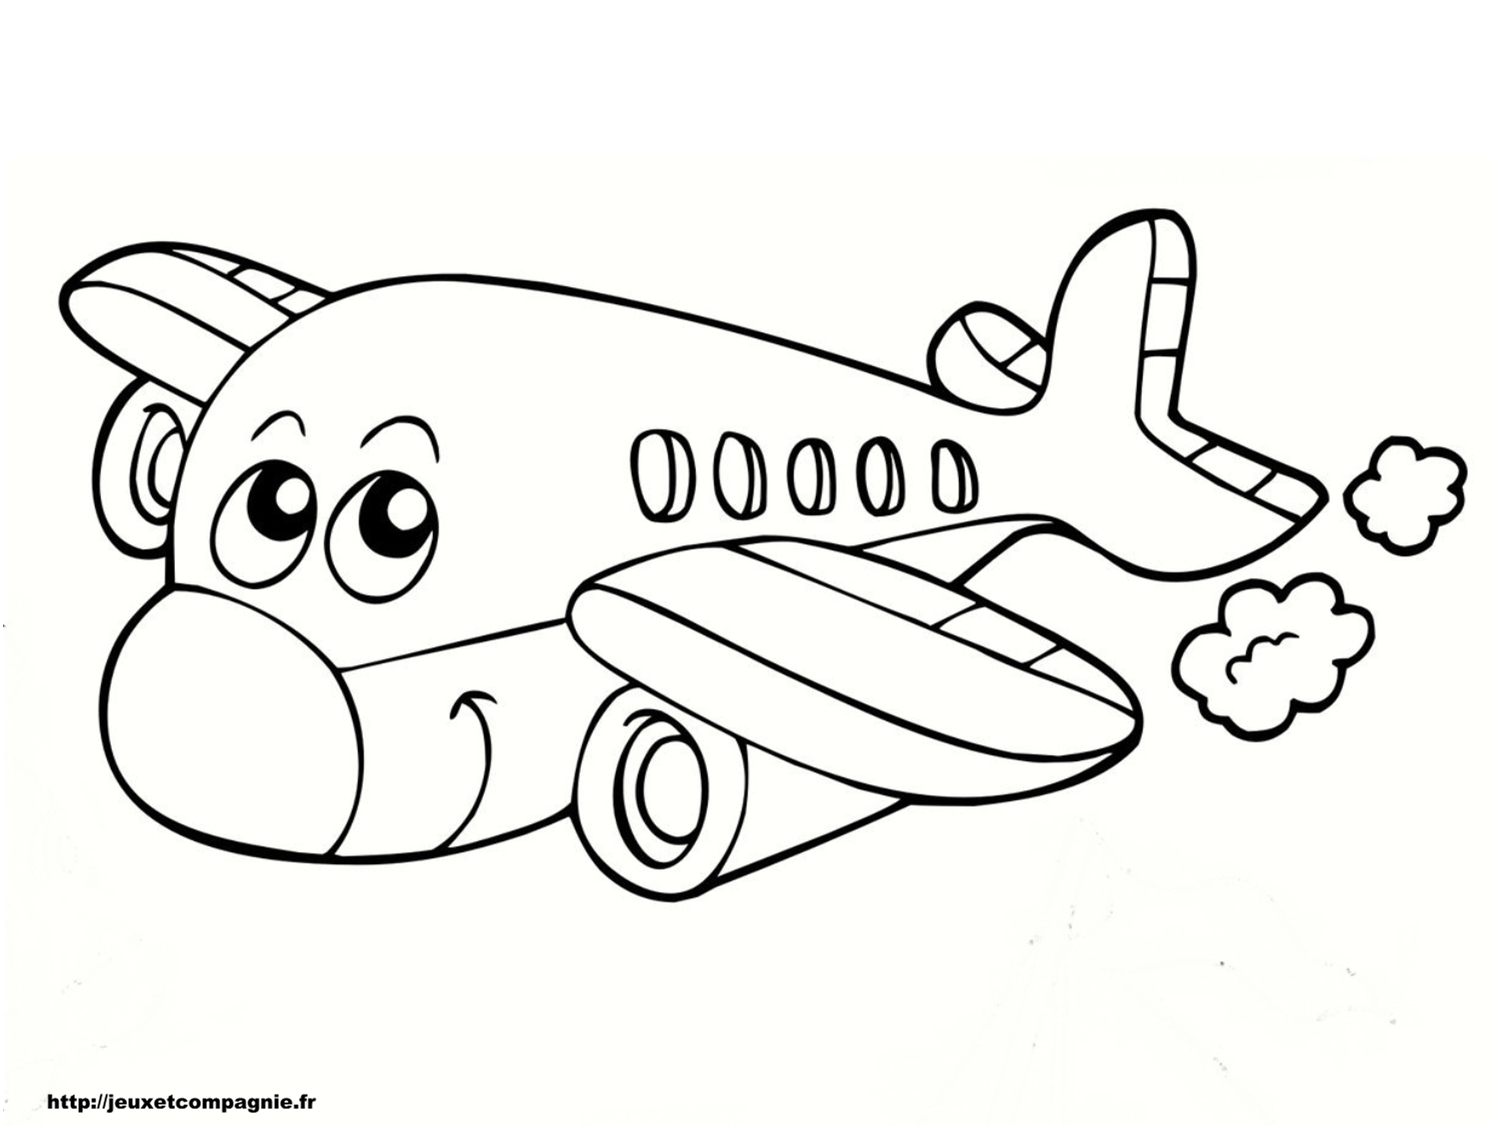 Coloriages de v hicules - Dessins avions ...